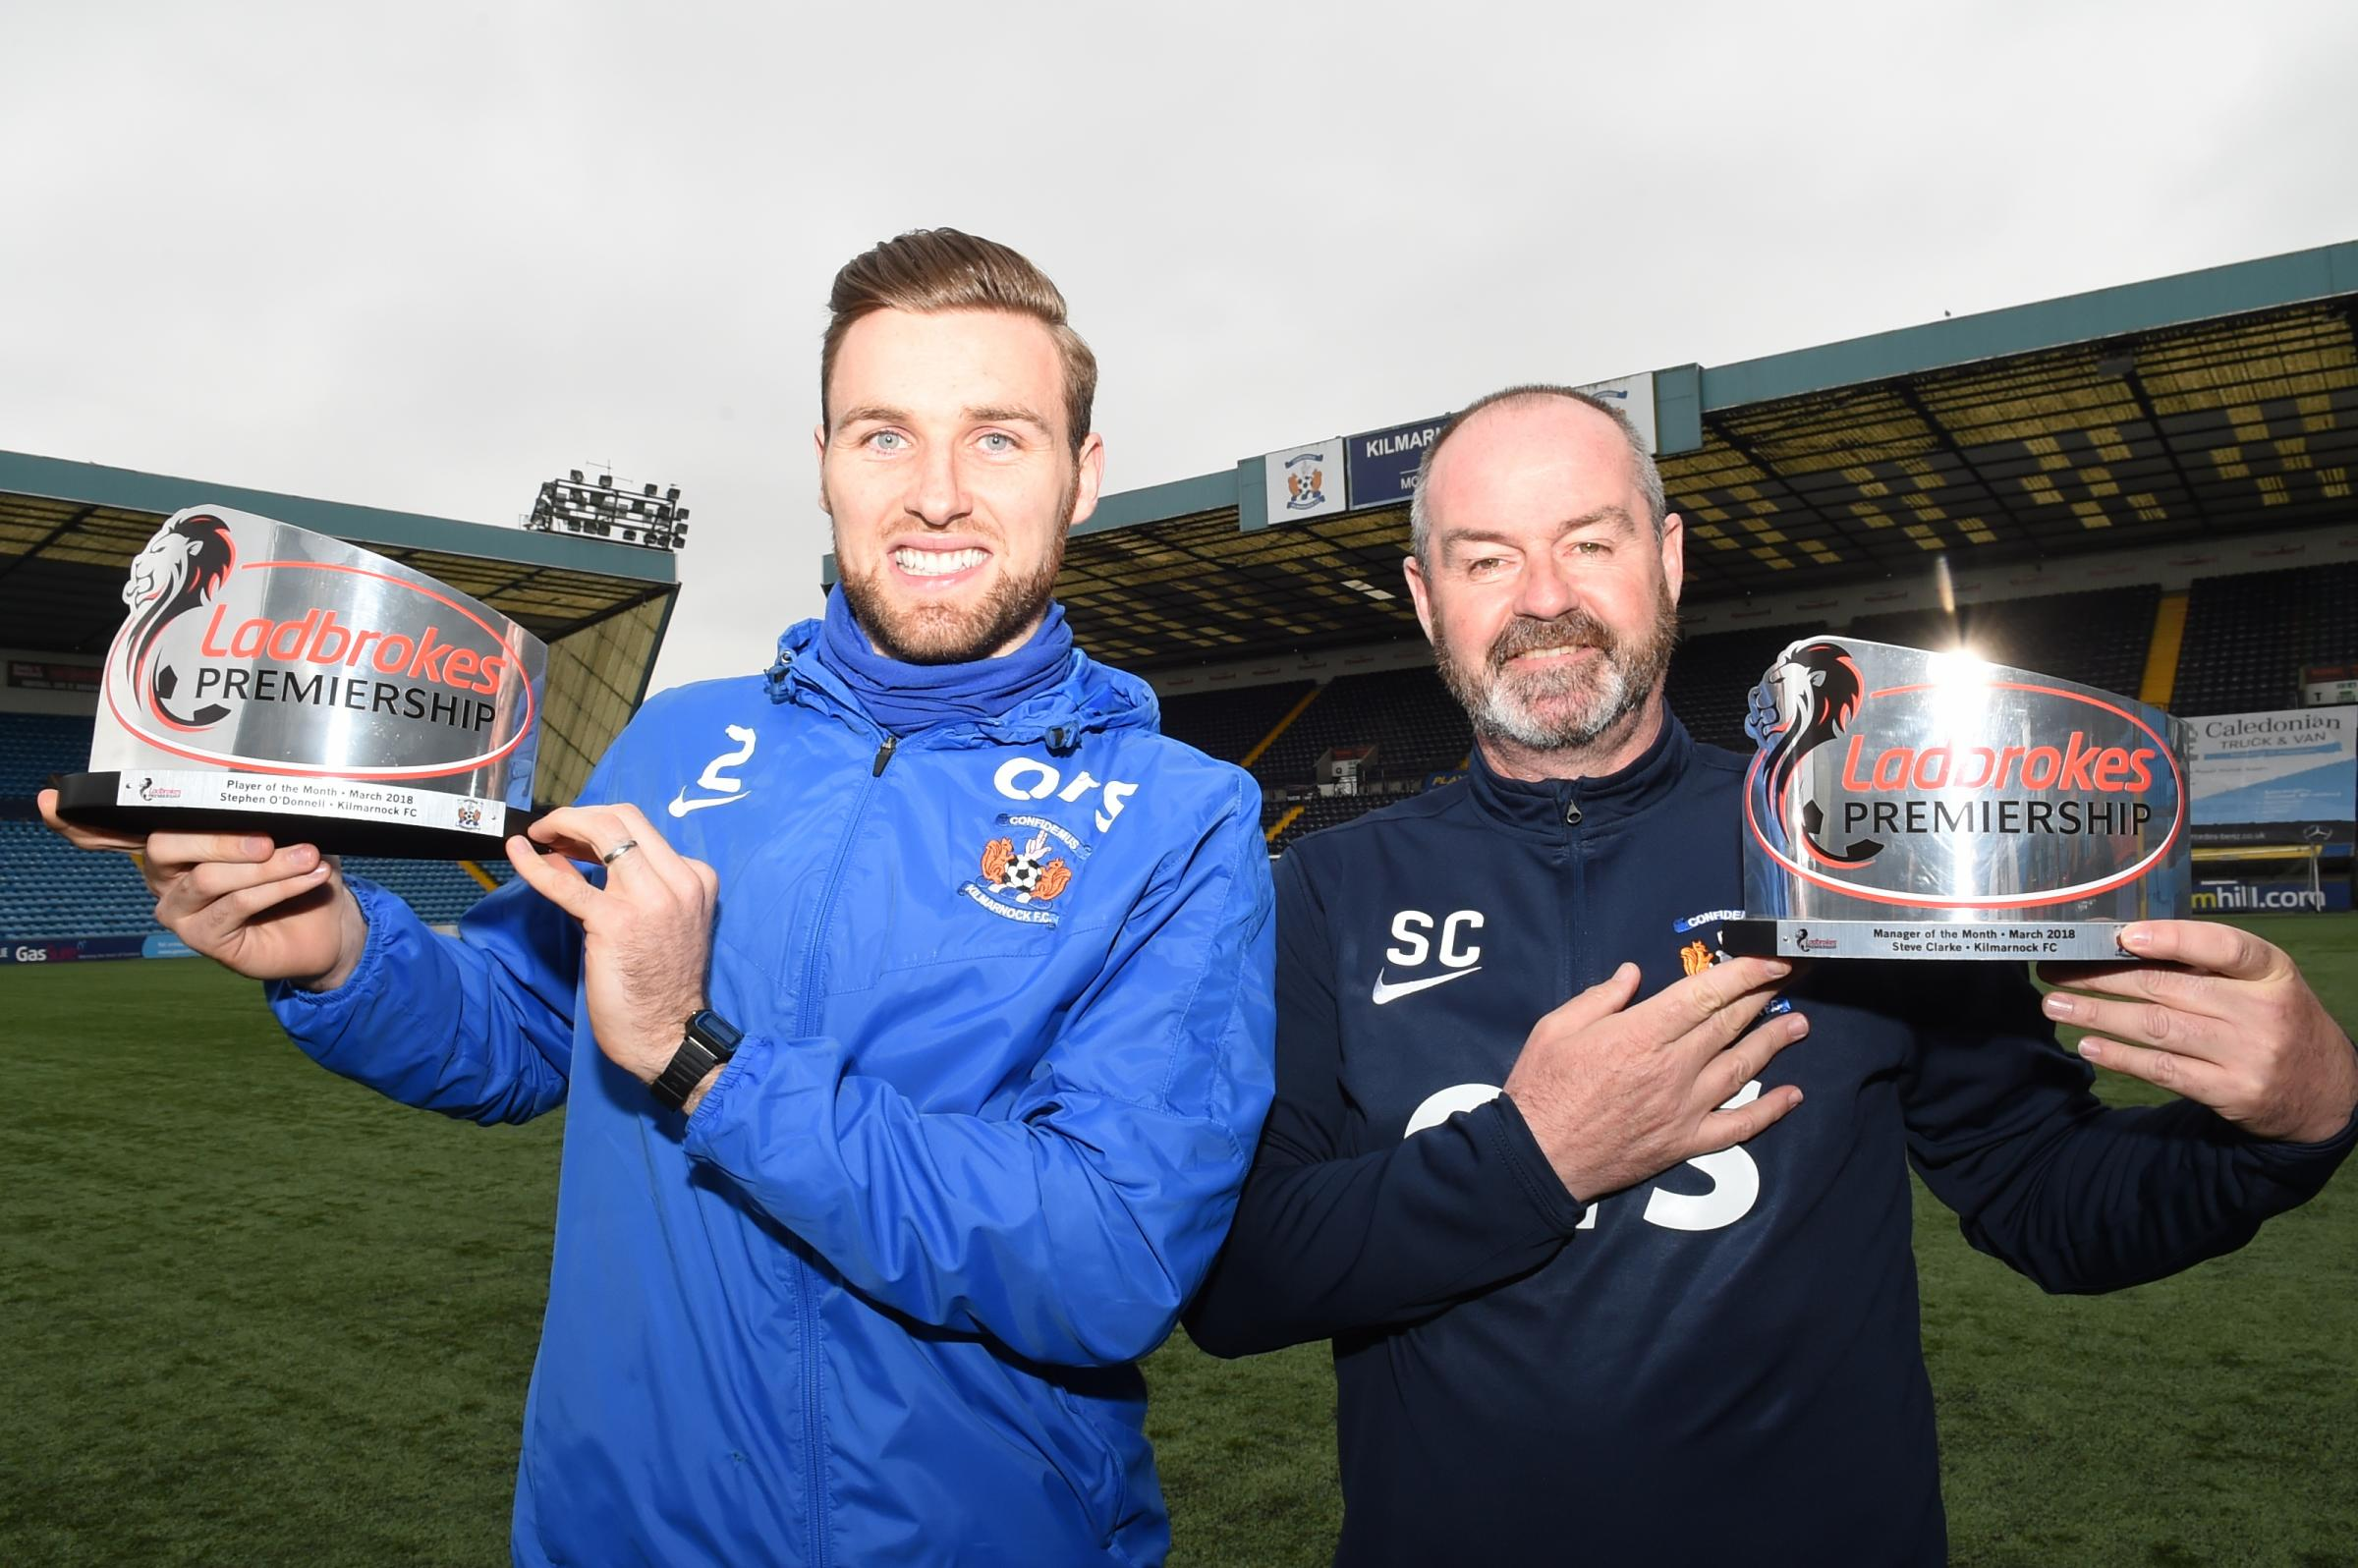 LEADING ACCOLADES: Steve Clark (right) and Stephen O'Donnell show off their awards.